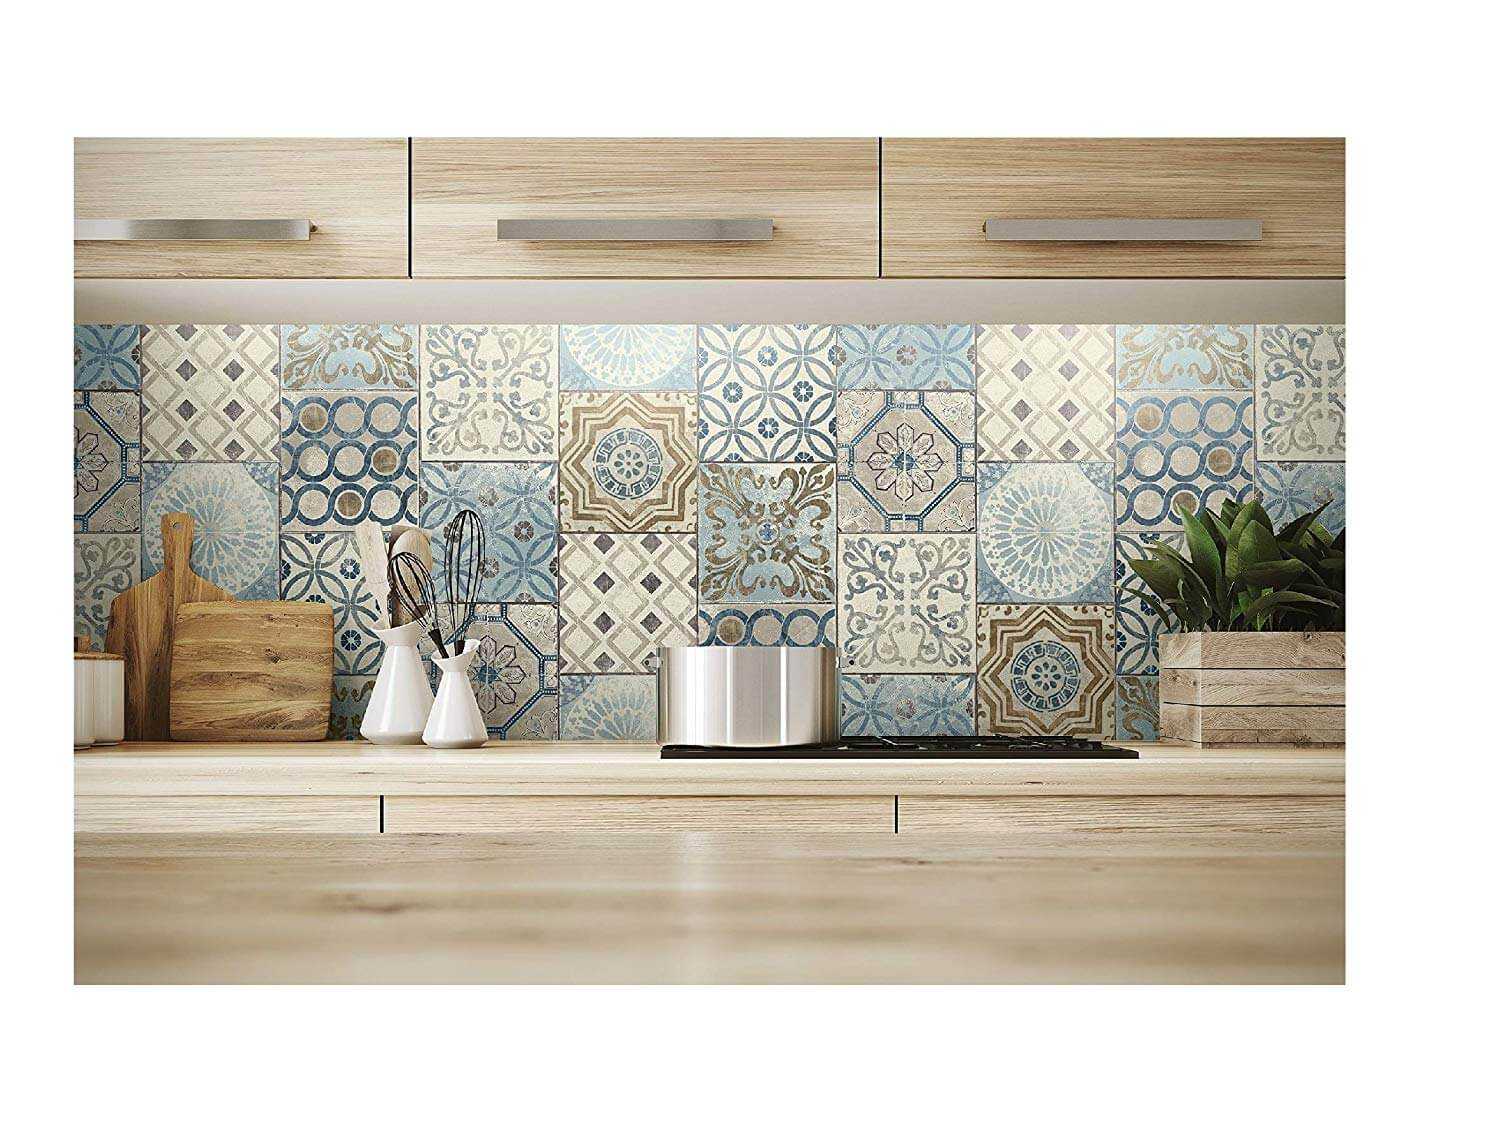 NextWall Moroccan Style Peel and Stick Mosaic Tile Wallpaper in Blue, Copper and Grey